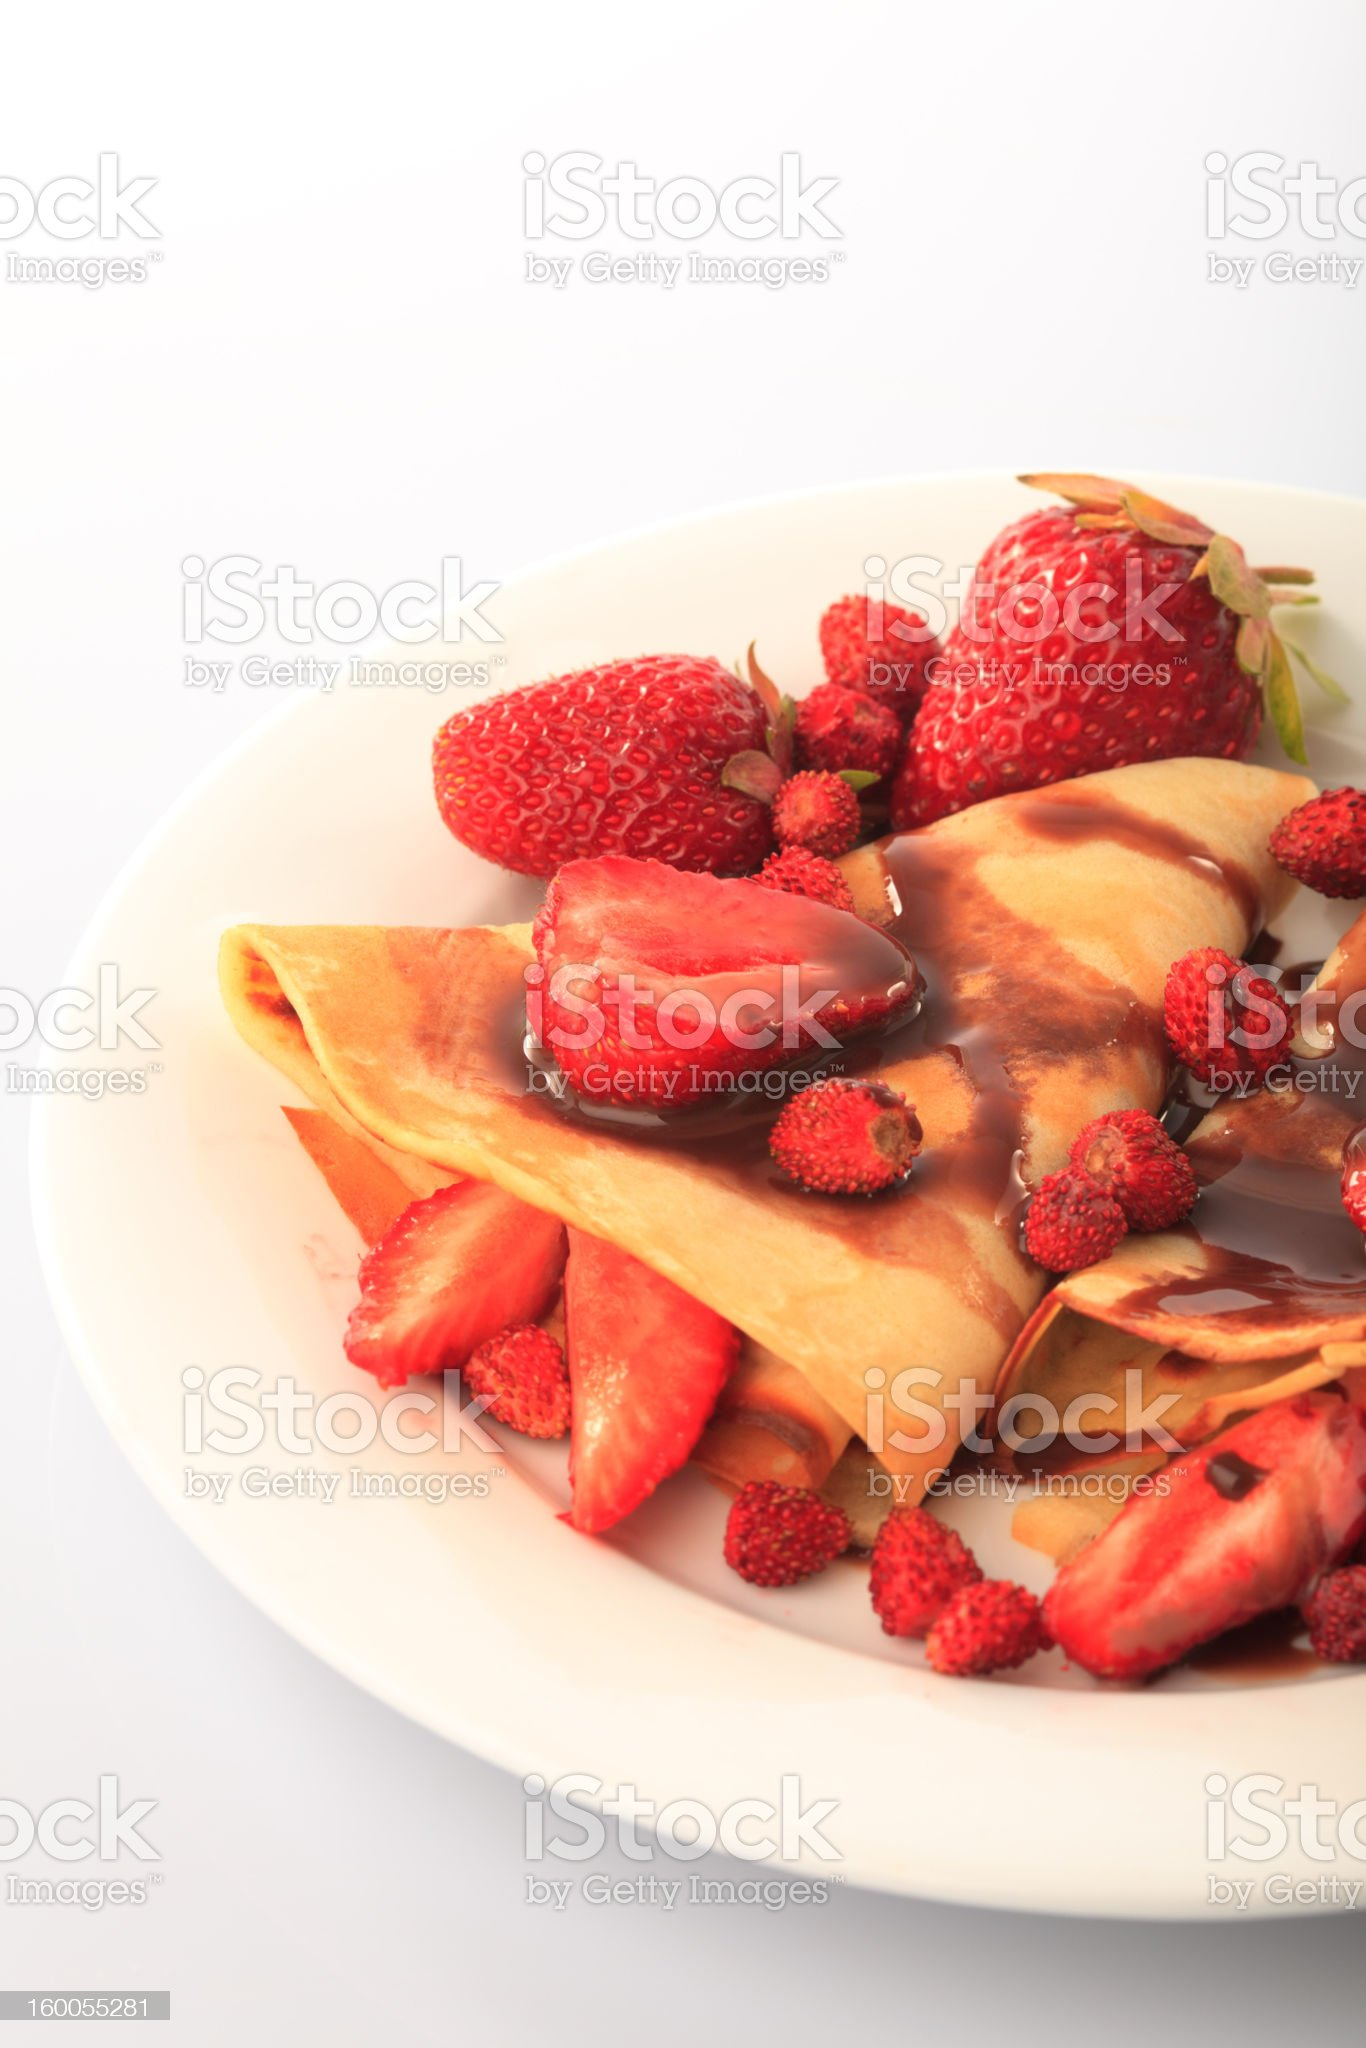 Pancakes with strawberries royalty-free stock photo